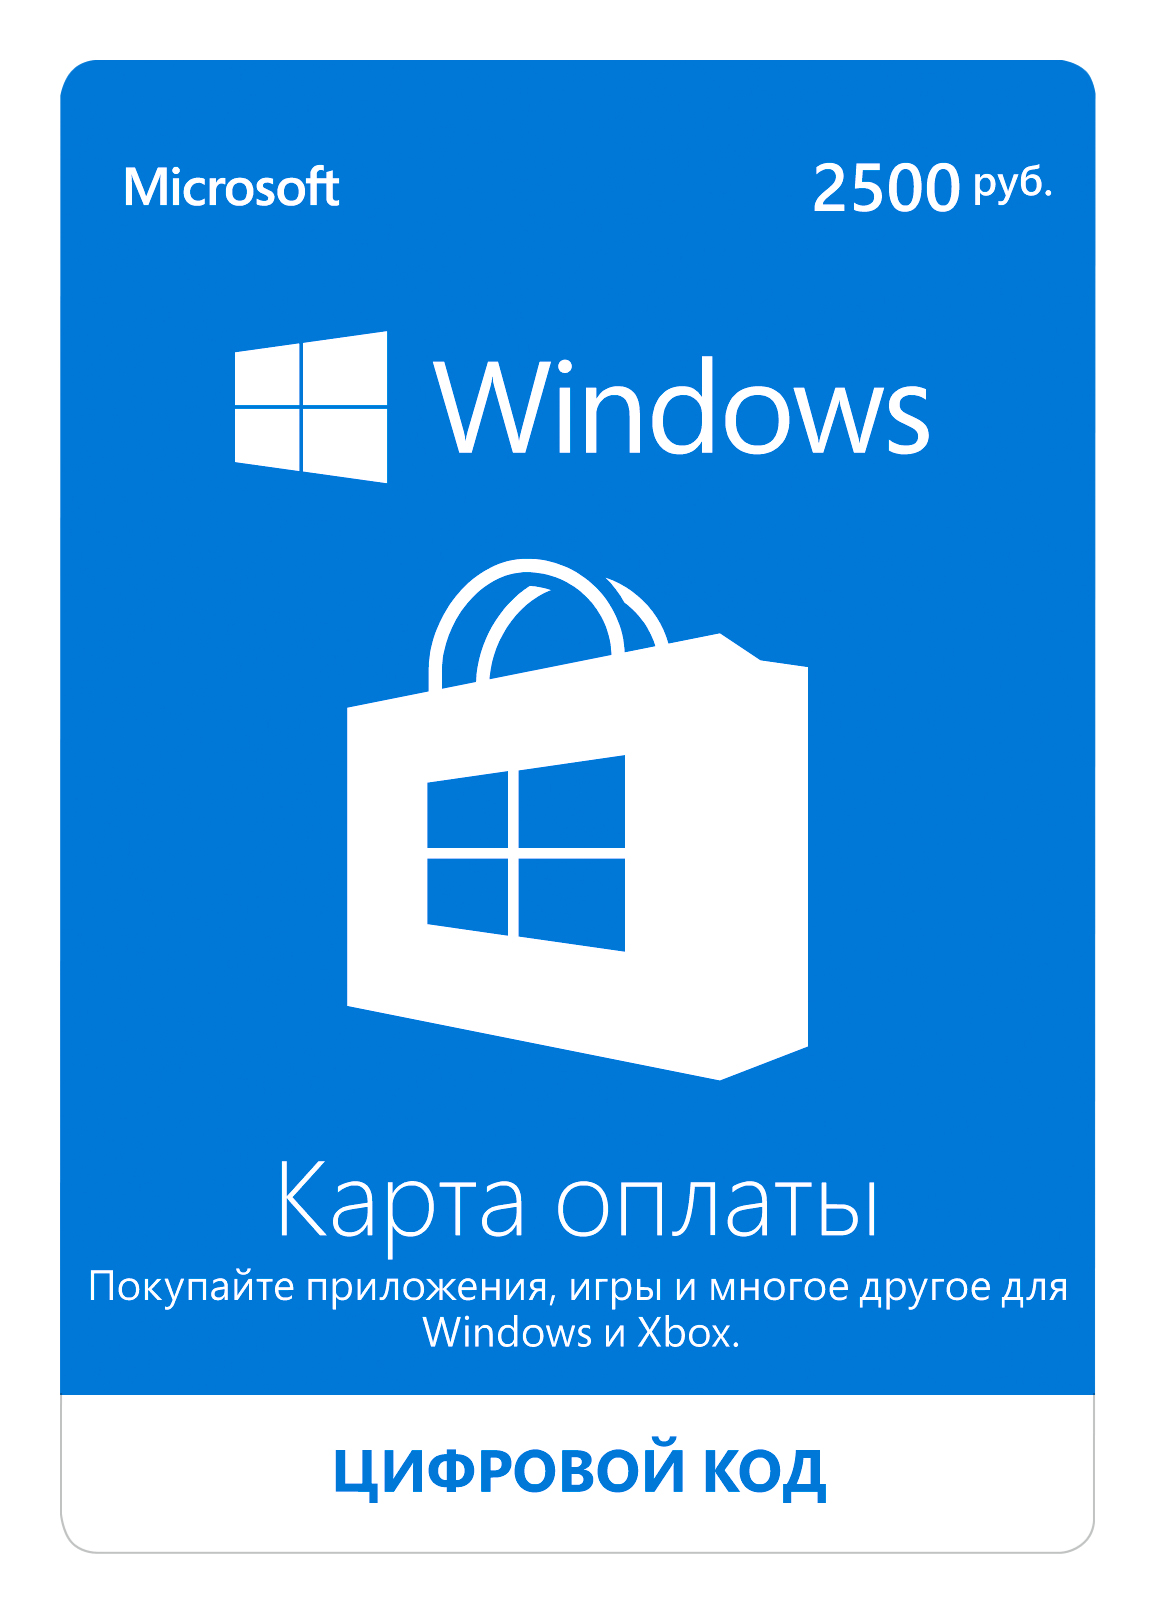 Payment card Windows 2500 RUB (Store Windows/Xbox Live)